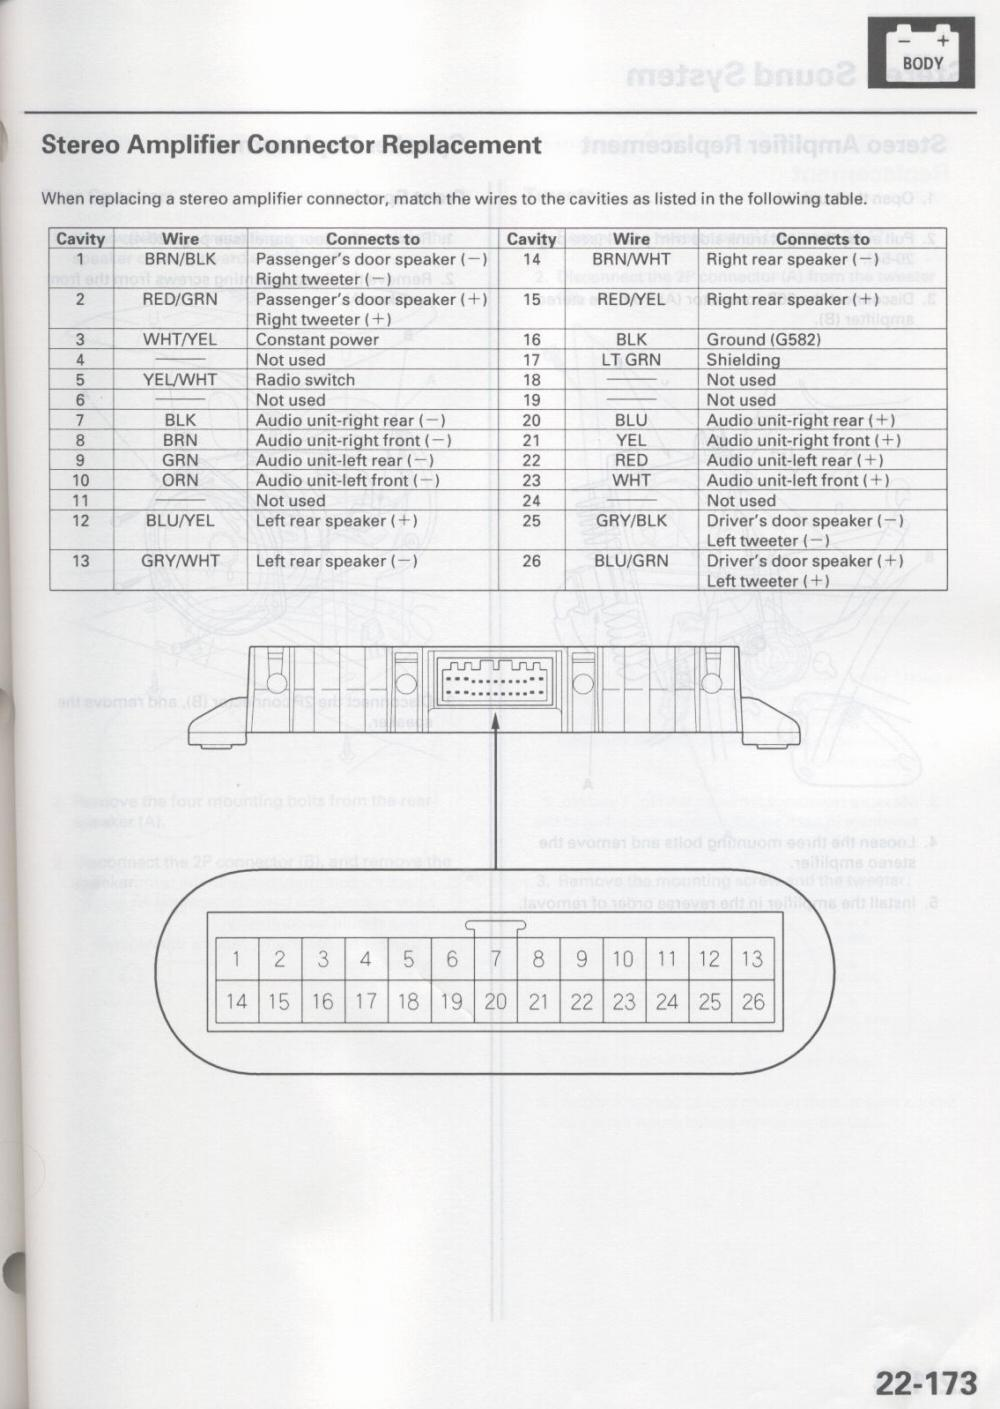 2011 Mitsubishi Eclipse Radio Wiring Diagram Car Radio Stereo Audio Wiring Diagram Autoradio Connector